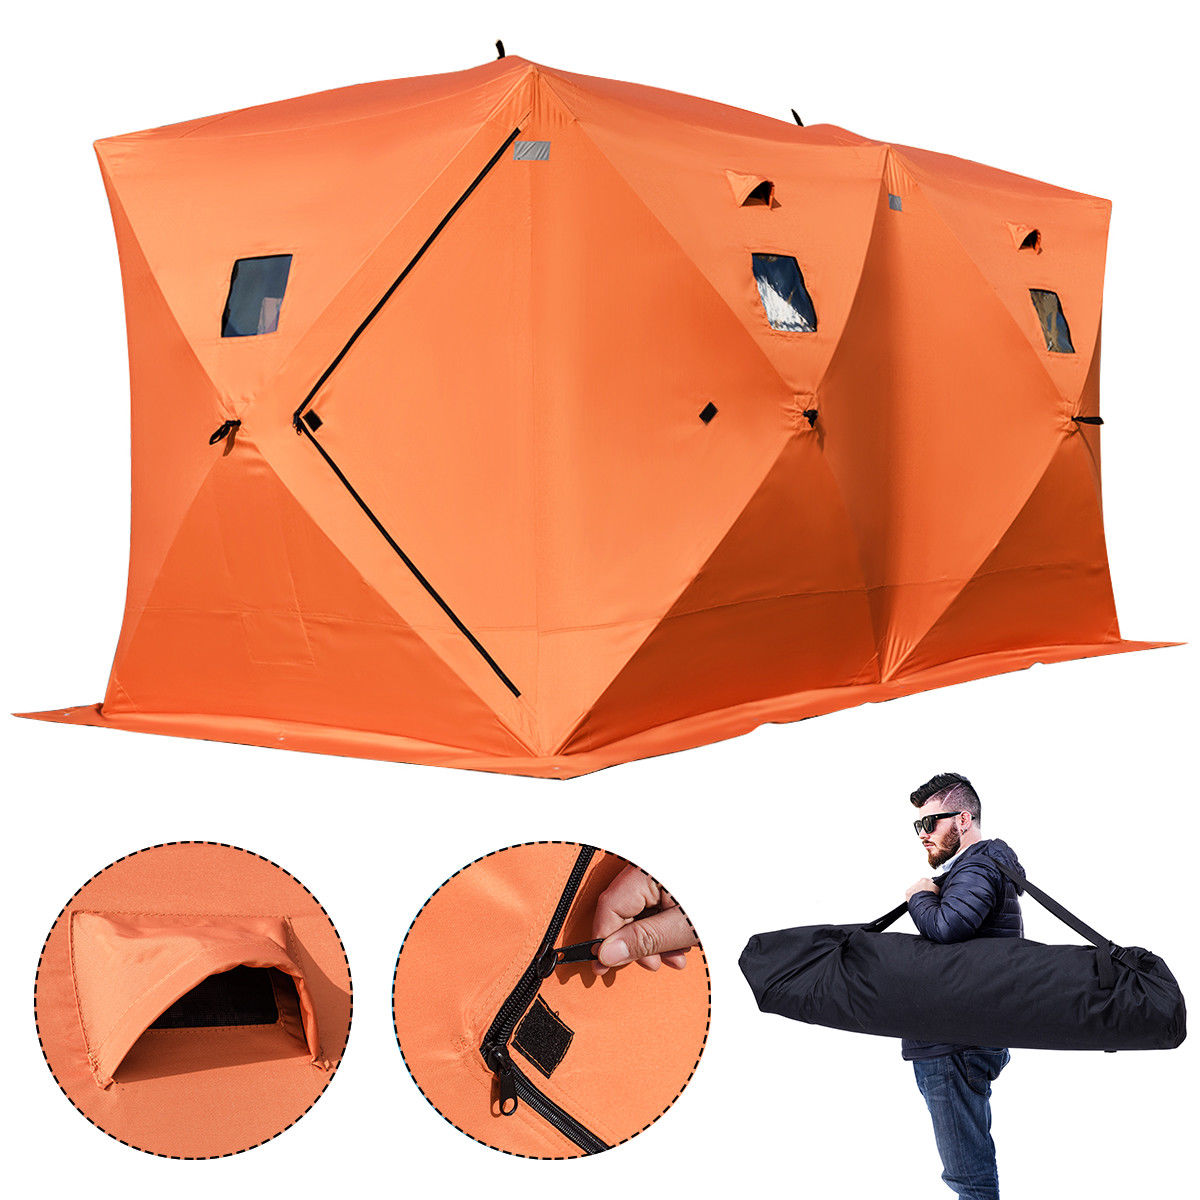 Gymax Waterproof Pop-up 8-person Ice Shelter Fishing Tent Shanty Window w Carrying Bag by Gymax